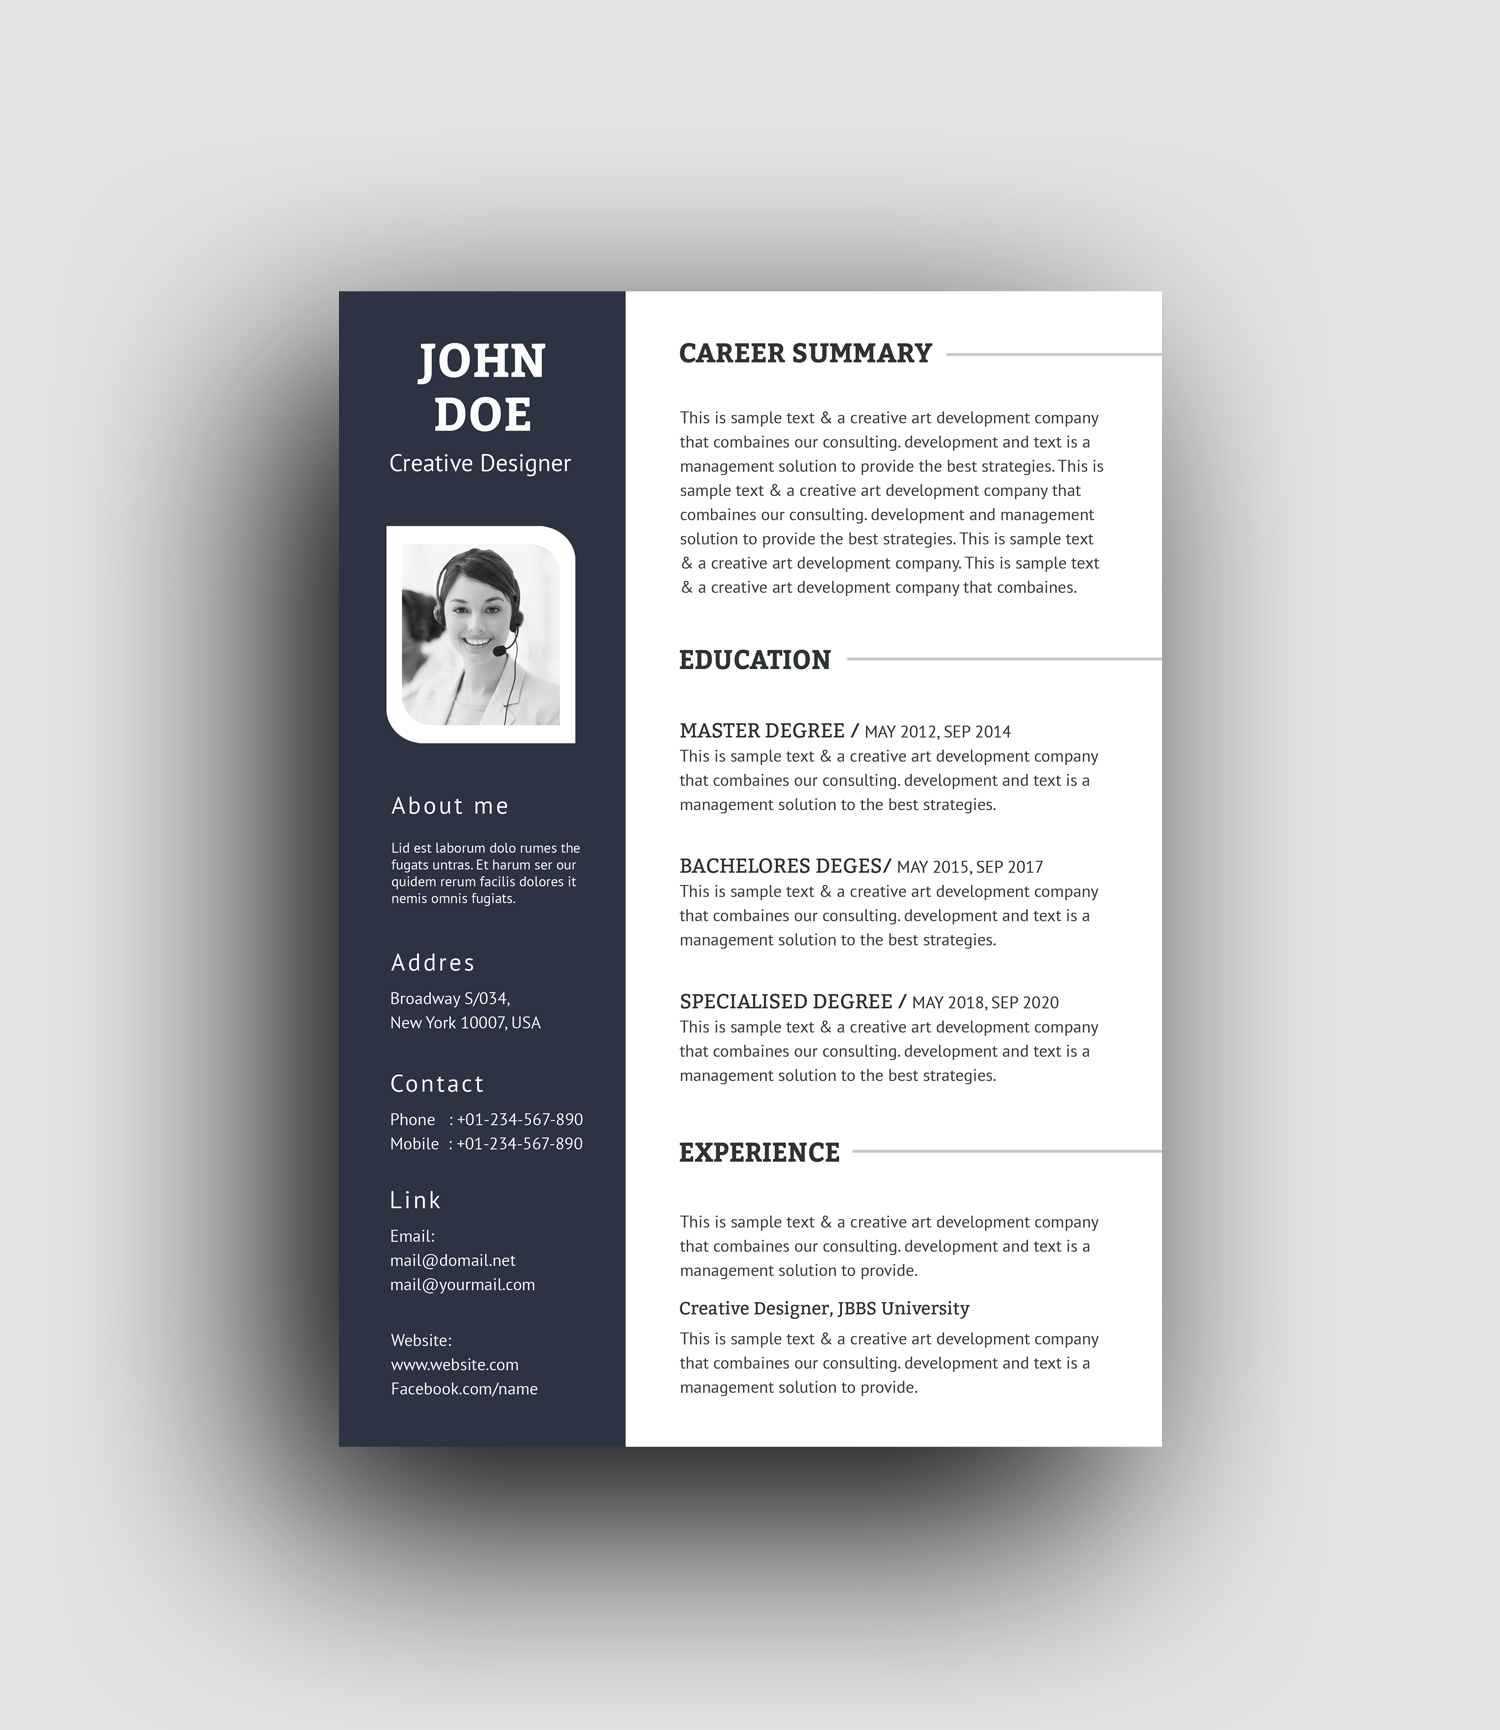 Psd Resume Template.Psd Elegant Professional Resume Template Graphic Templates